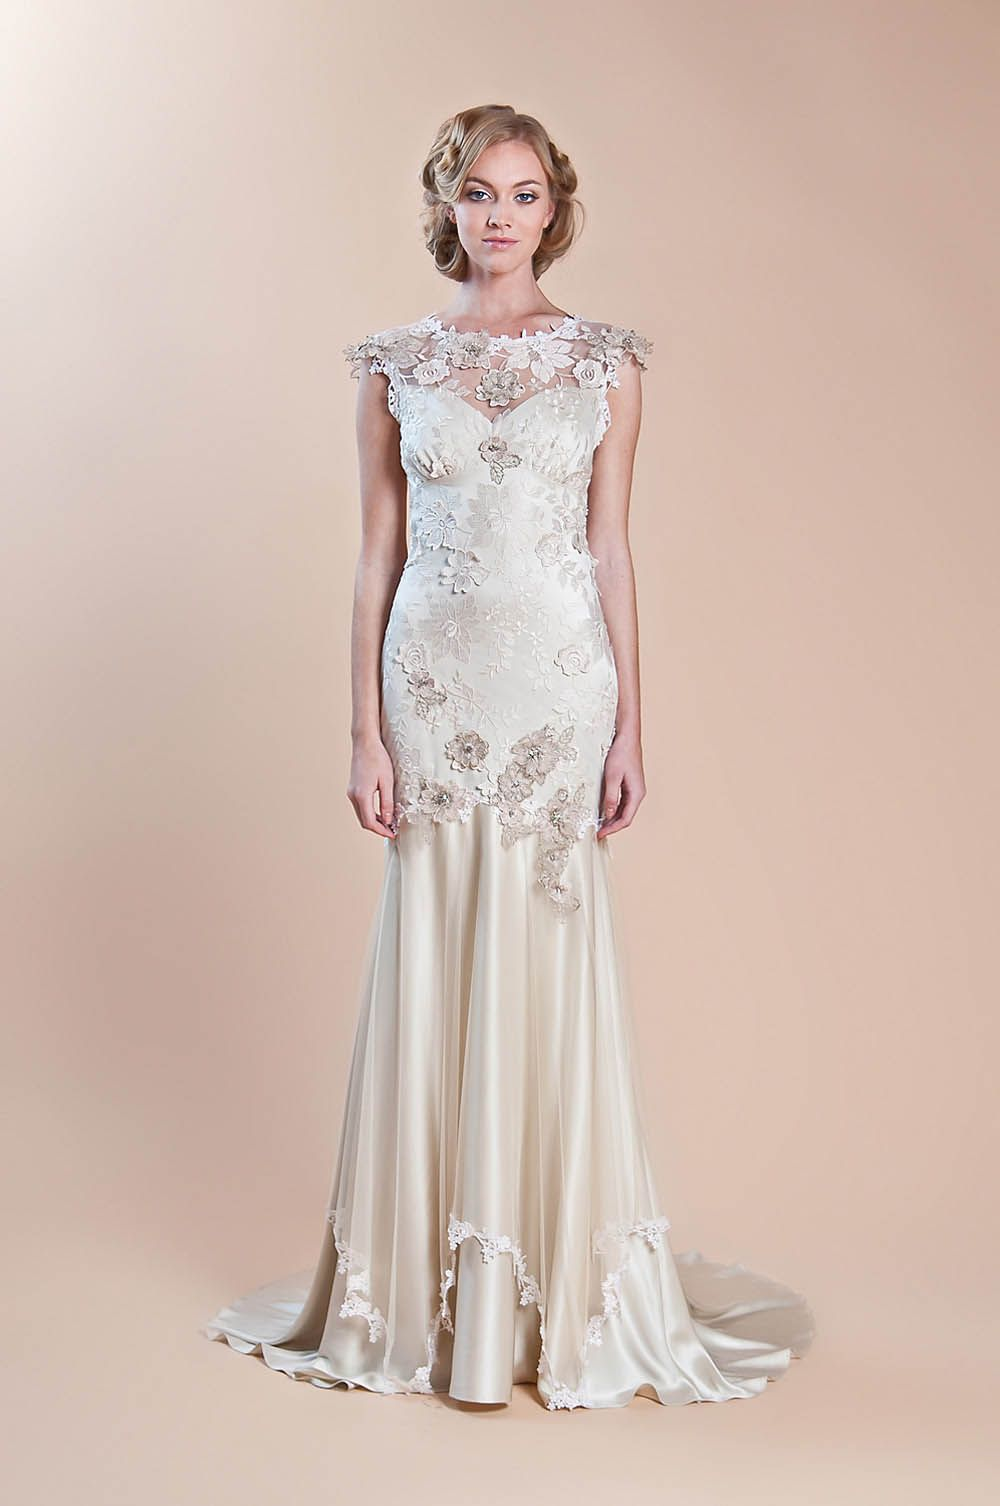 claire pettibone - couture bridal l wedding dresses, bridal gowns